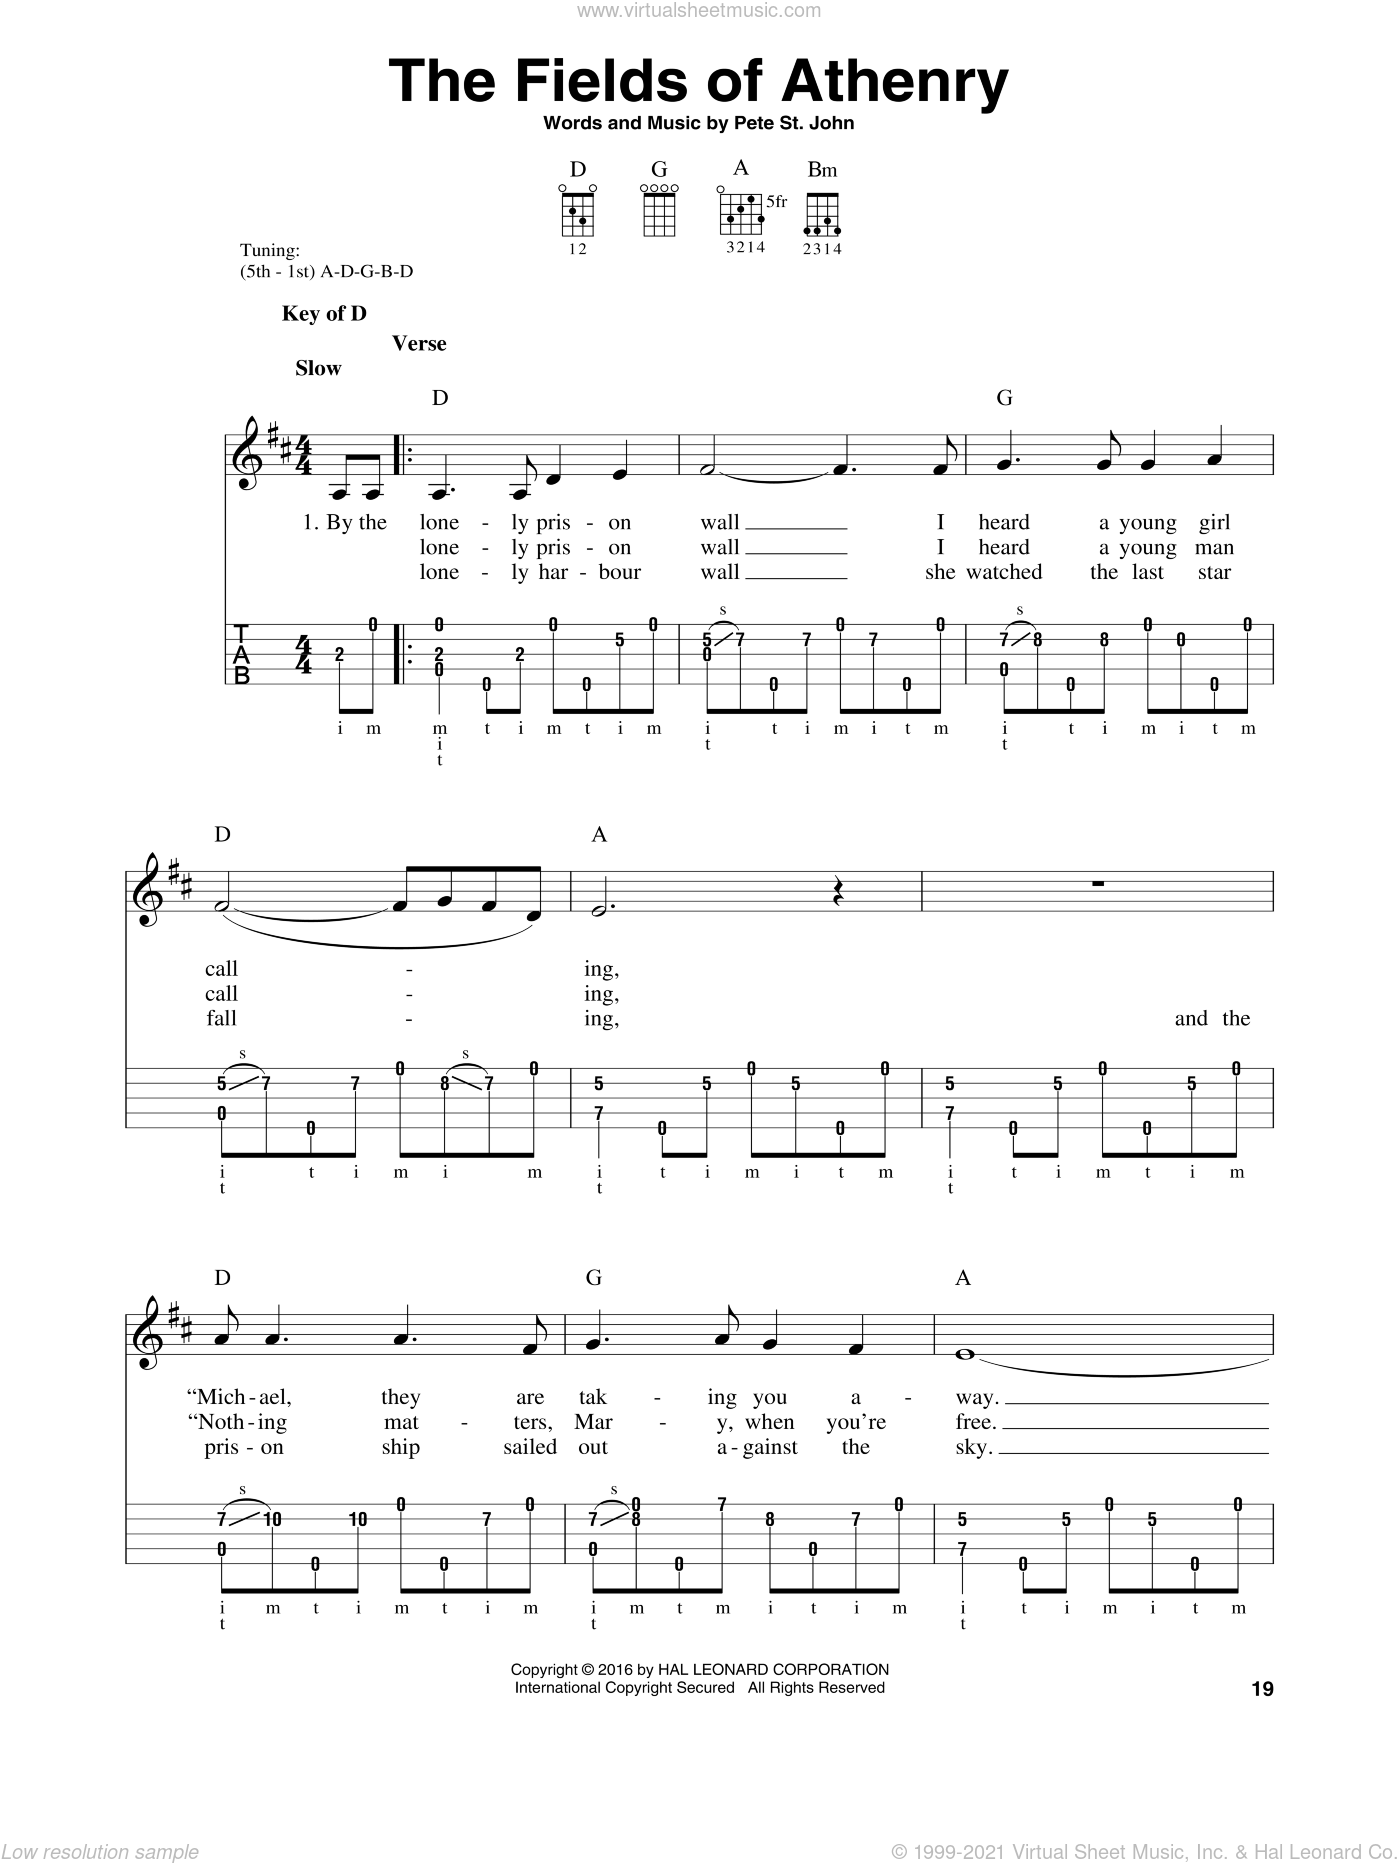 The Fields Of Athenry sheet music for banjo solo by Pete St. John